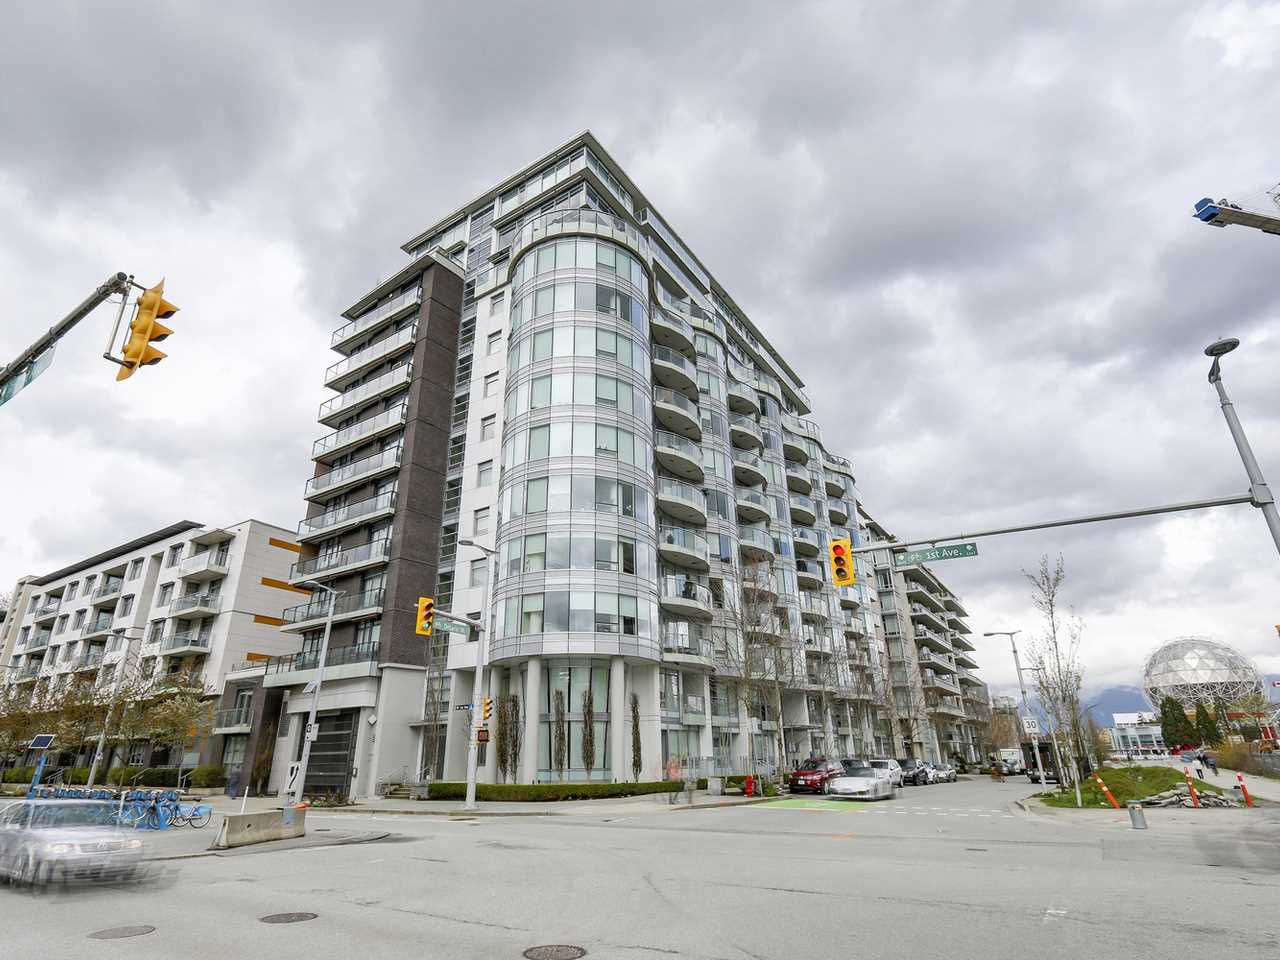 Main Photo: 309 1661 ONTARIO STREET in Vancouver: False Creek Condo for sale (Vancouver West)  : MLS®# R2157053